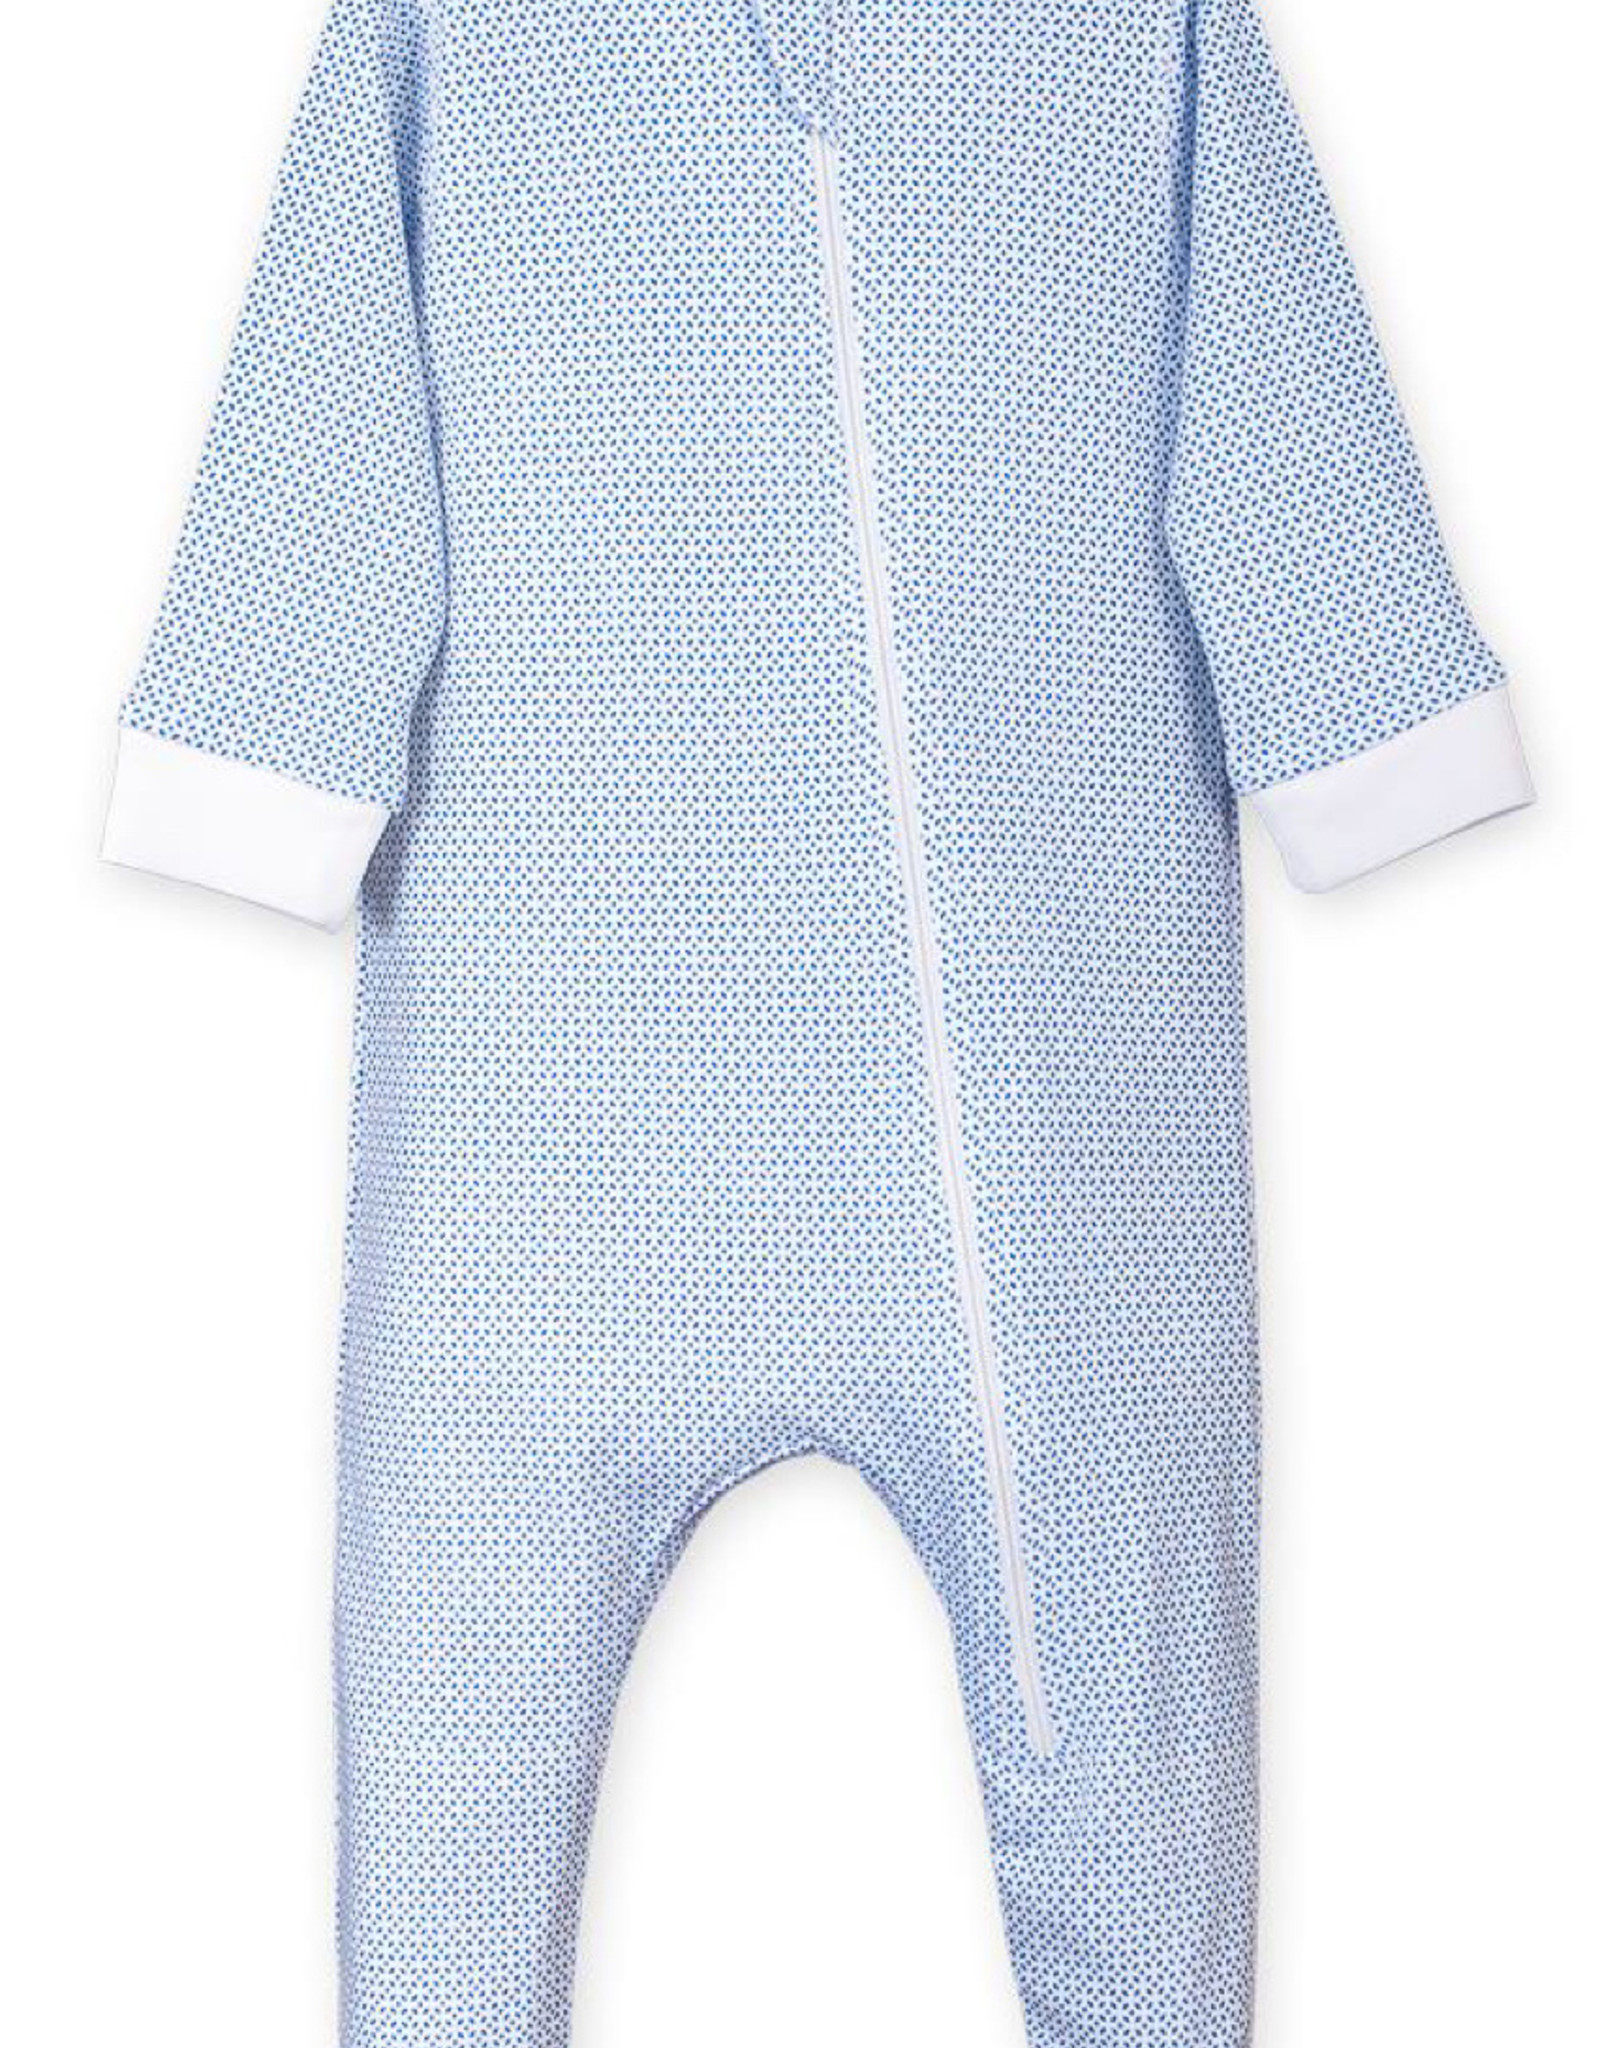 feather baby Tiny Geo on White Zippered Footie